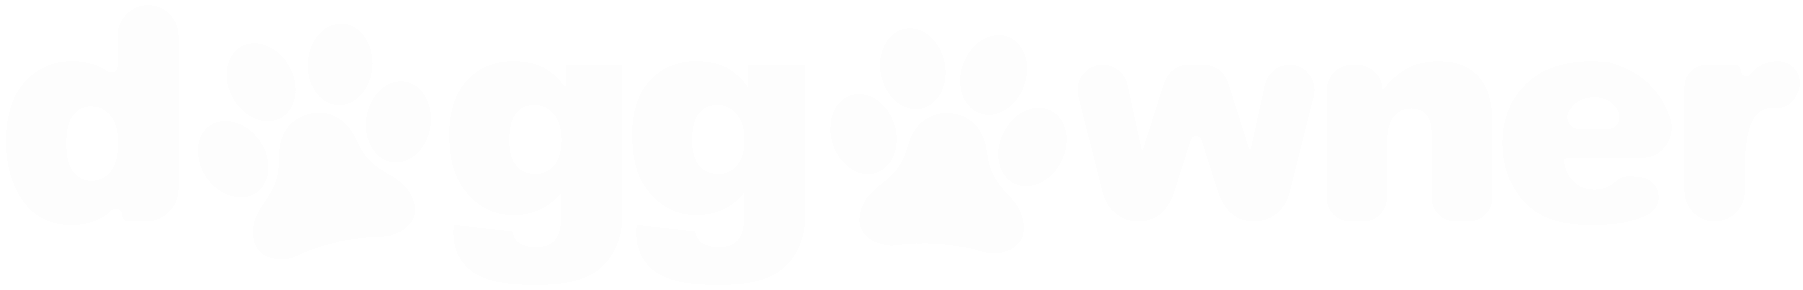 The DoggOwner logo in white